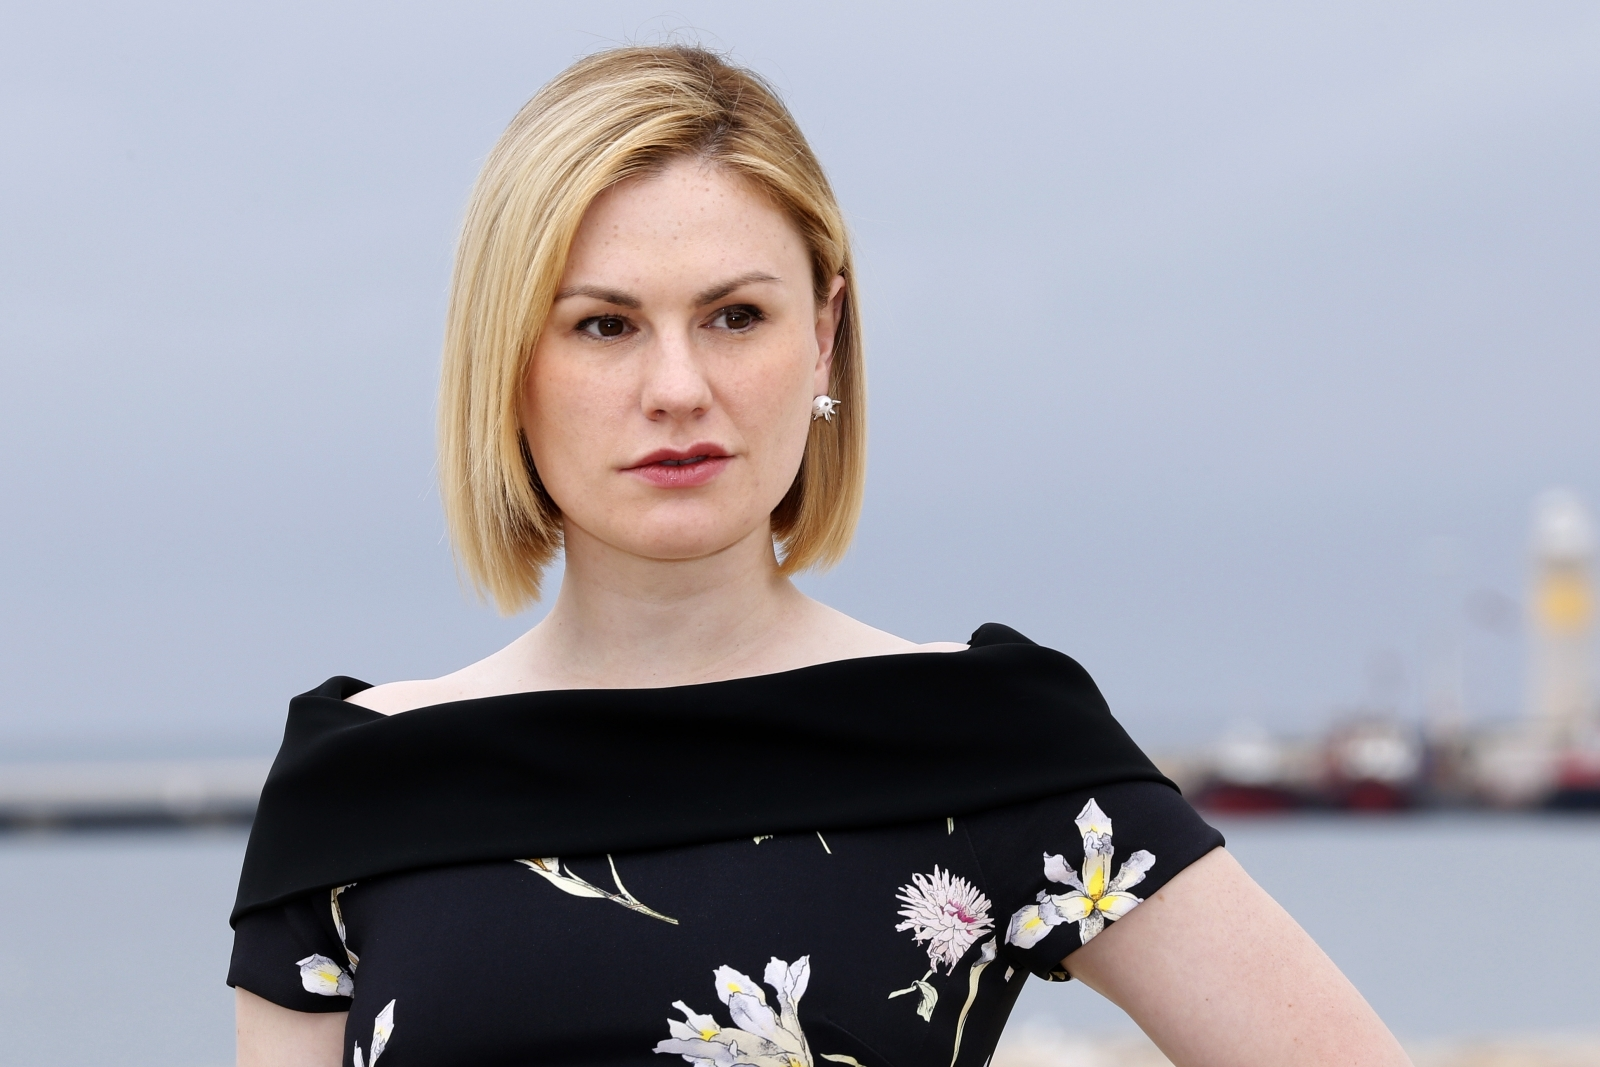 Kiwi Oscar-winner Anna Paquin relishes starring role in BBC News boob